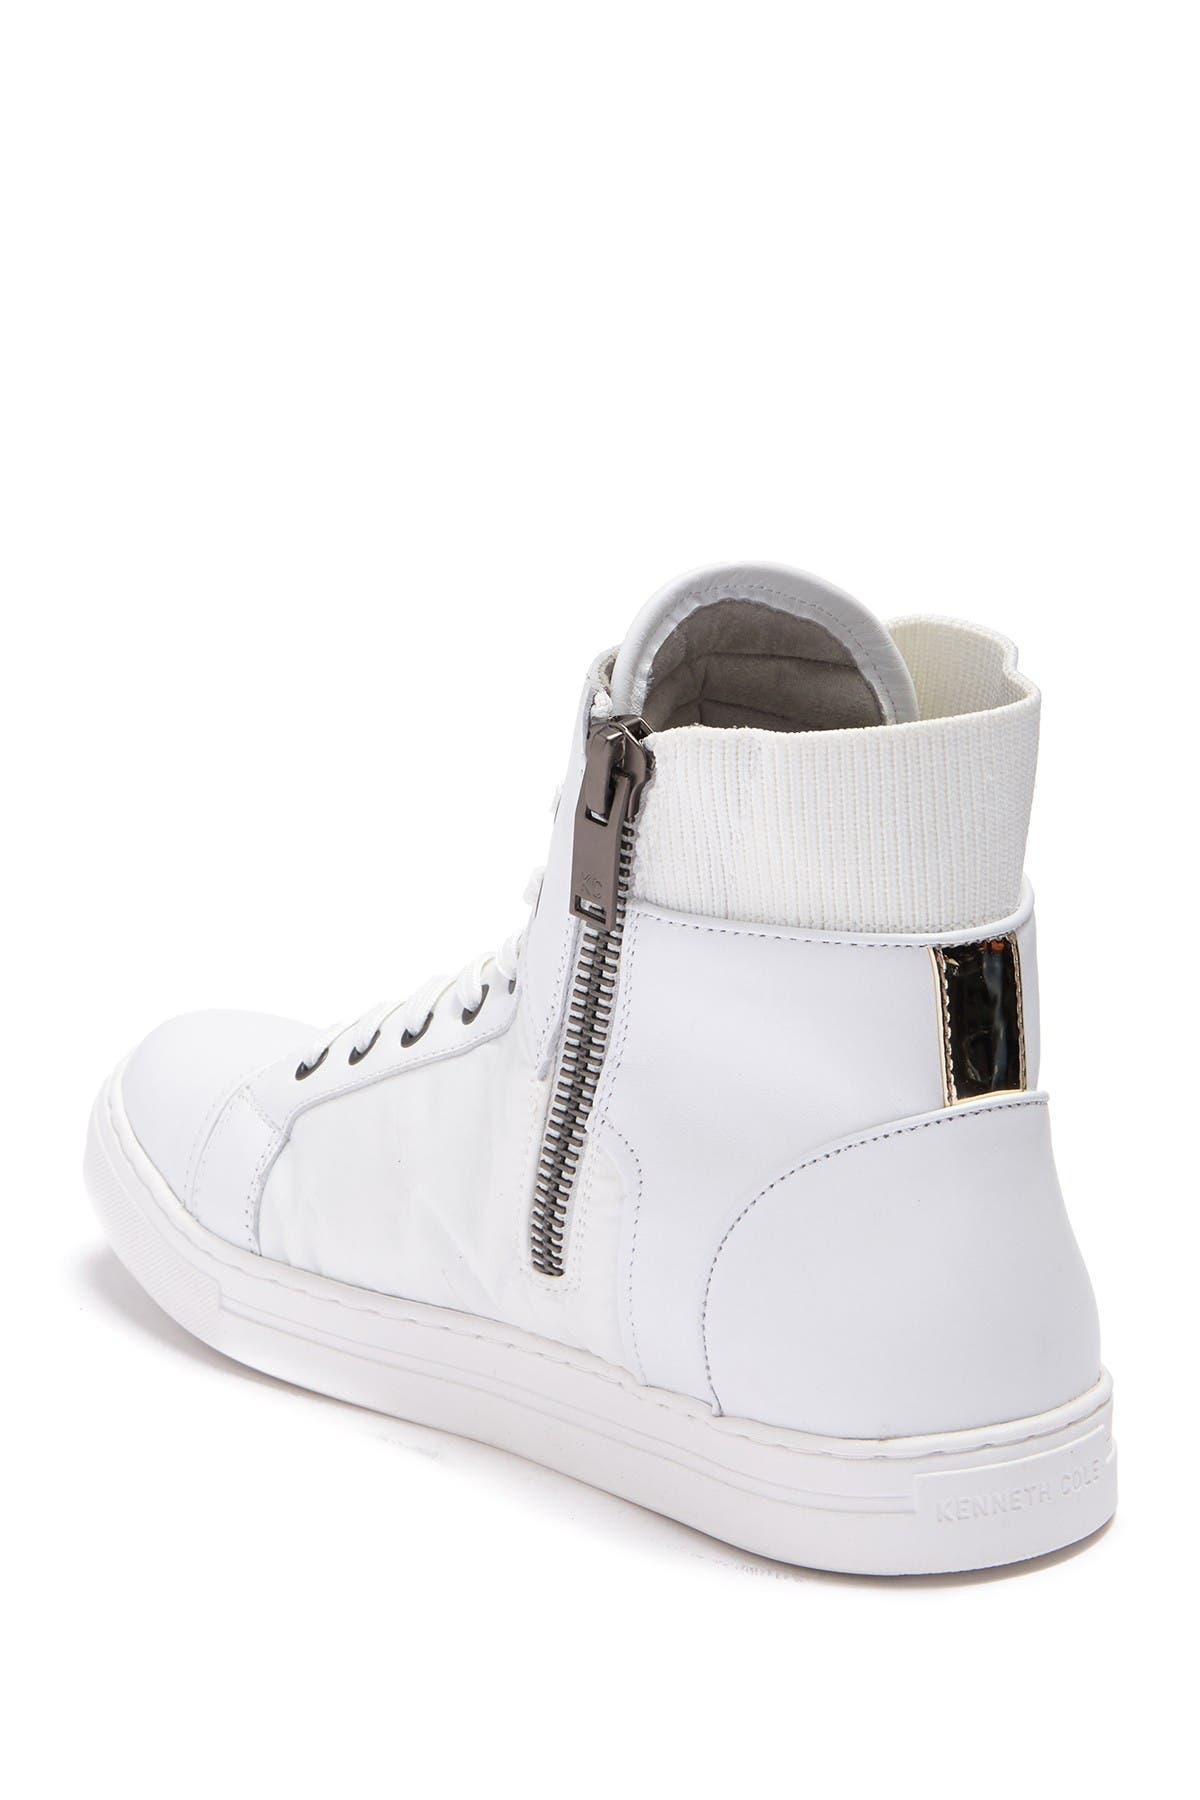 Image of Kenneth Cole New York Kam High Top Sneaker